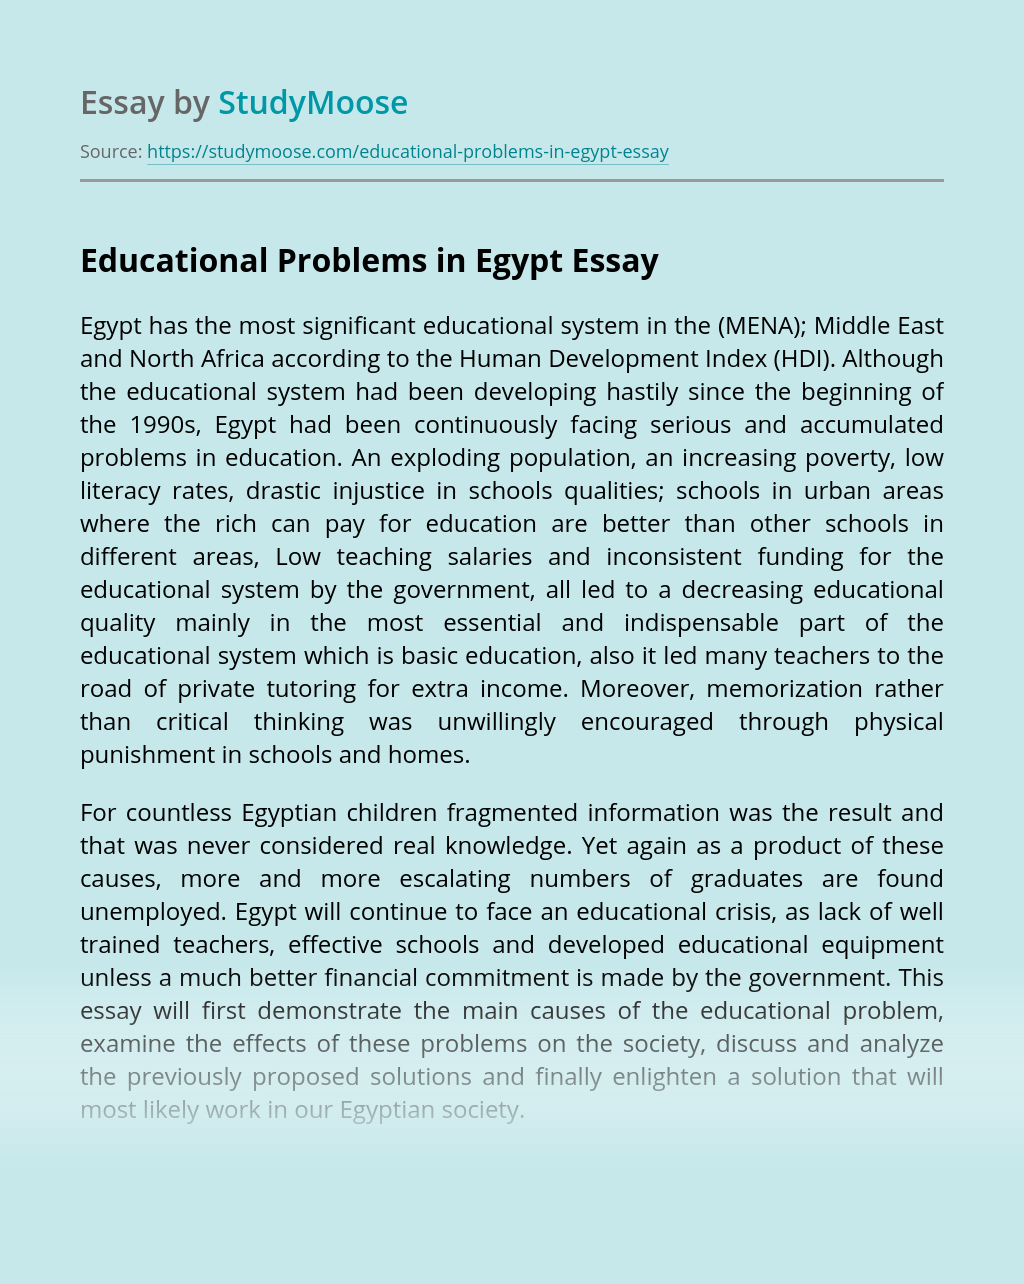 Educational Problems in Egypt